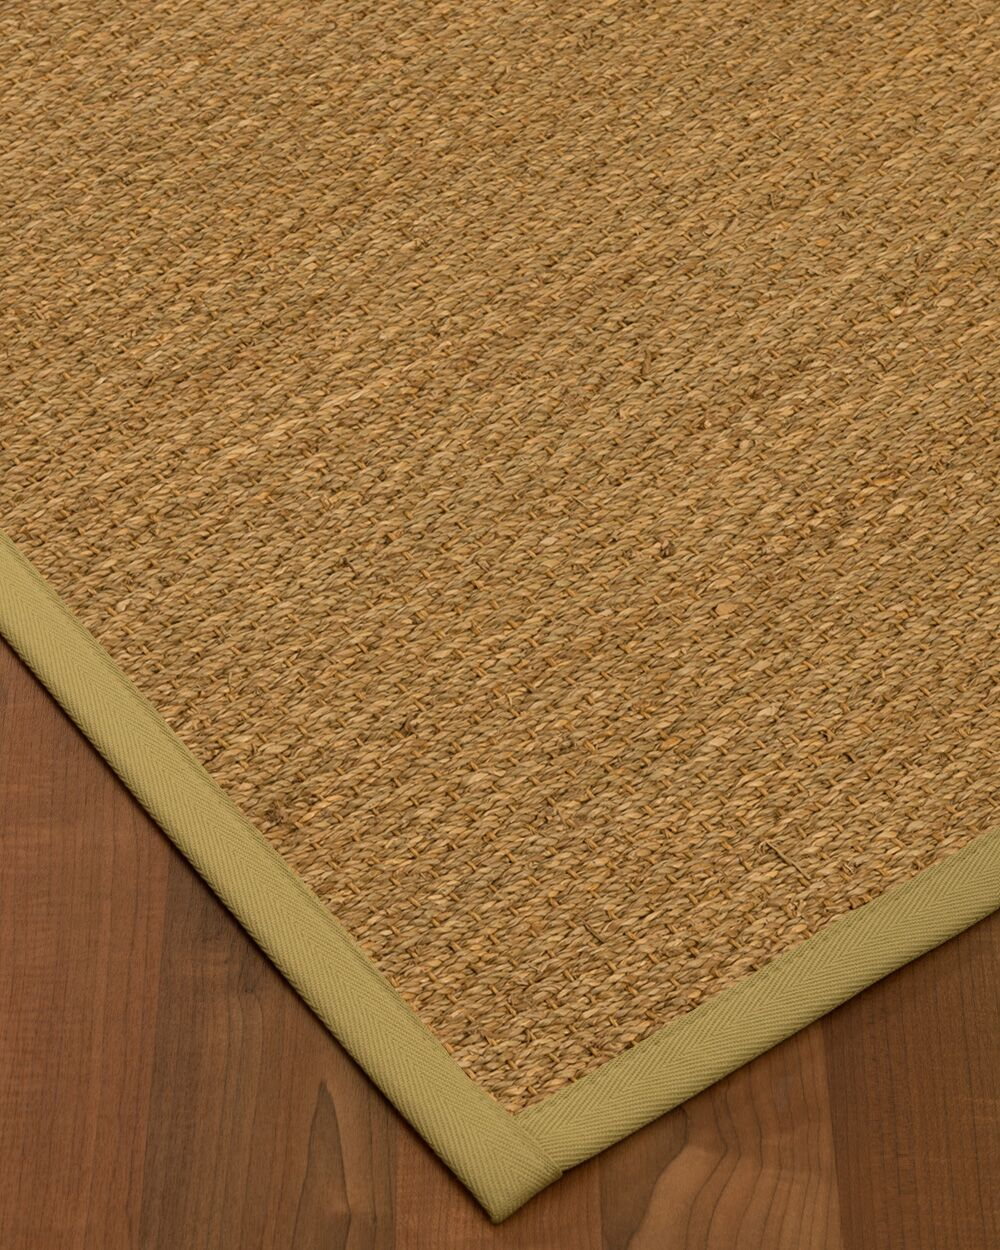 Anya Border Hand-Woven Beige/Sand Area Rug Rug Size: Rectangle 12' x 15', Rug Pad Included: Yes